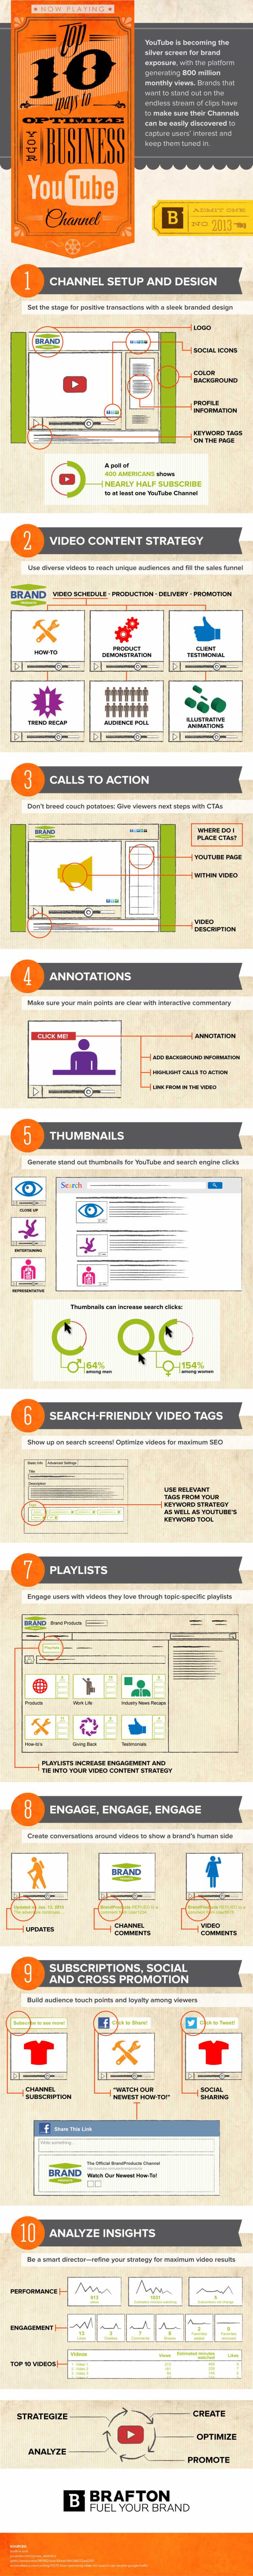 The 10 tips for YouTube Channel optimization outlined in this infographic will lead to more video marketing exposure, engagement and transactions.